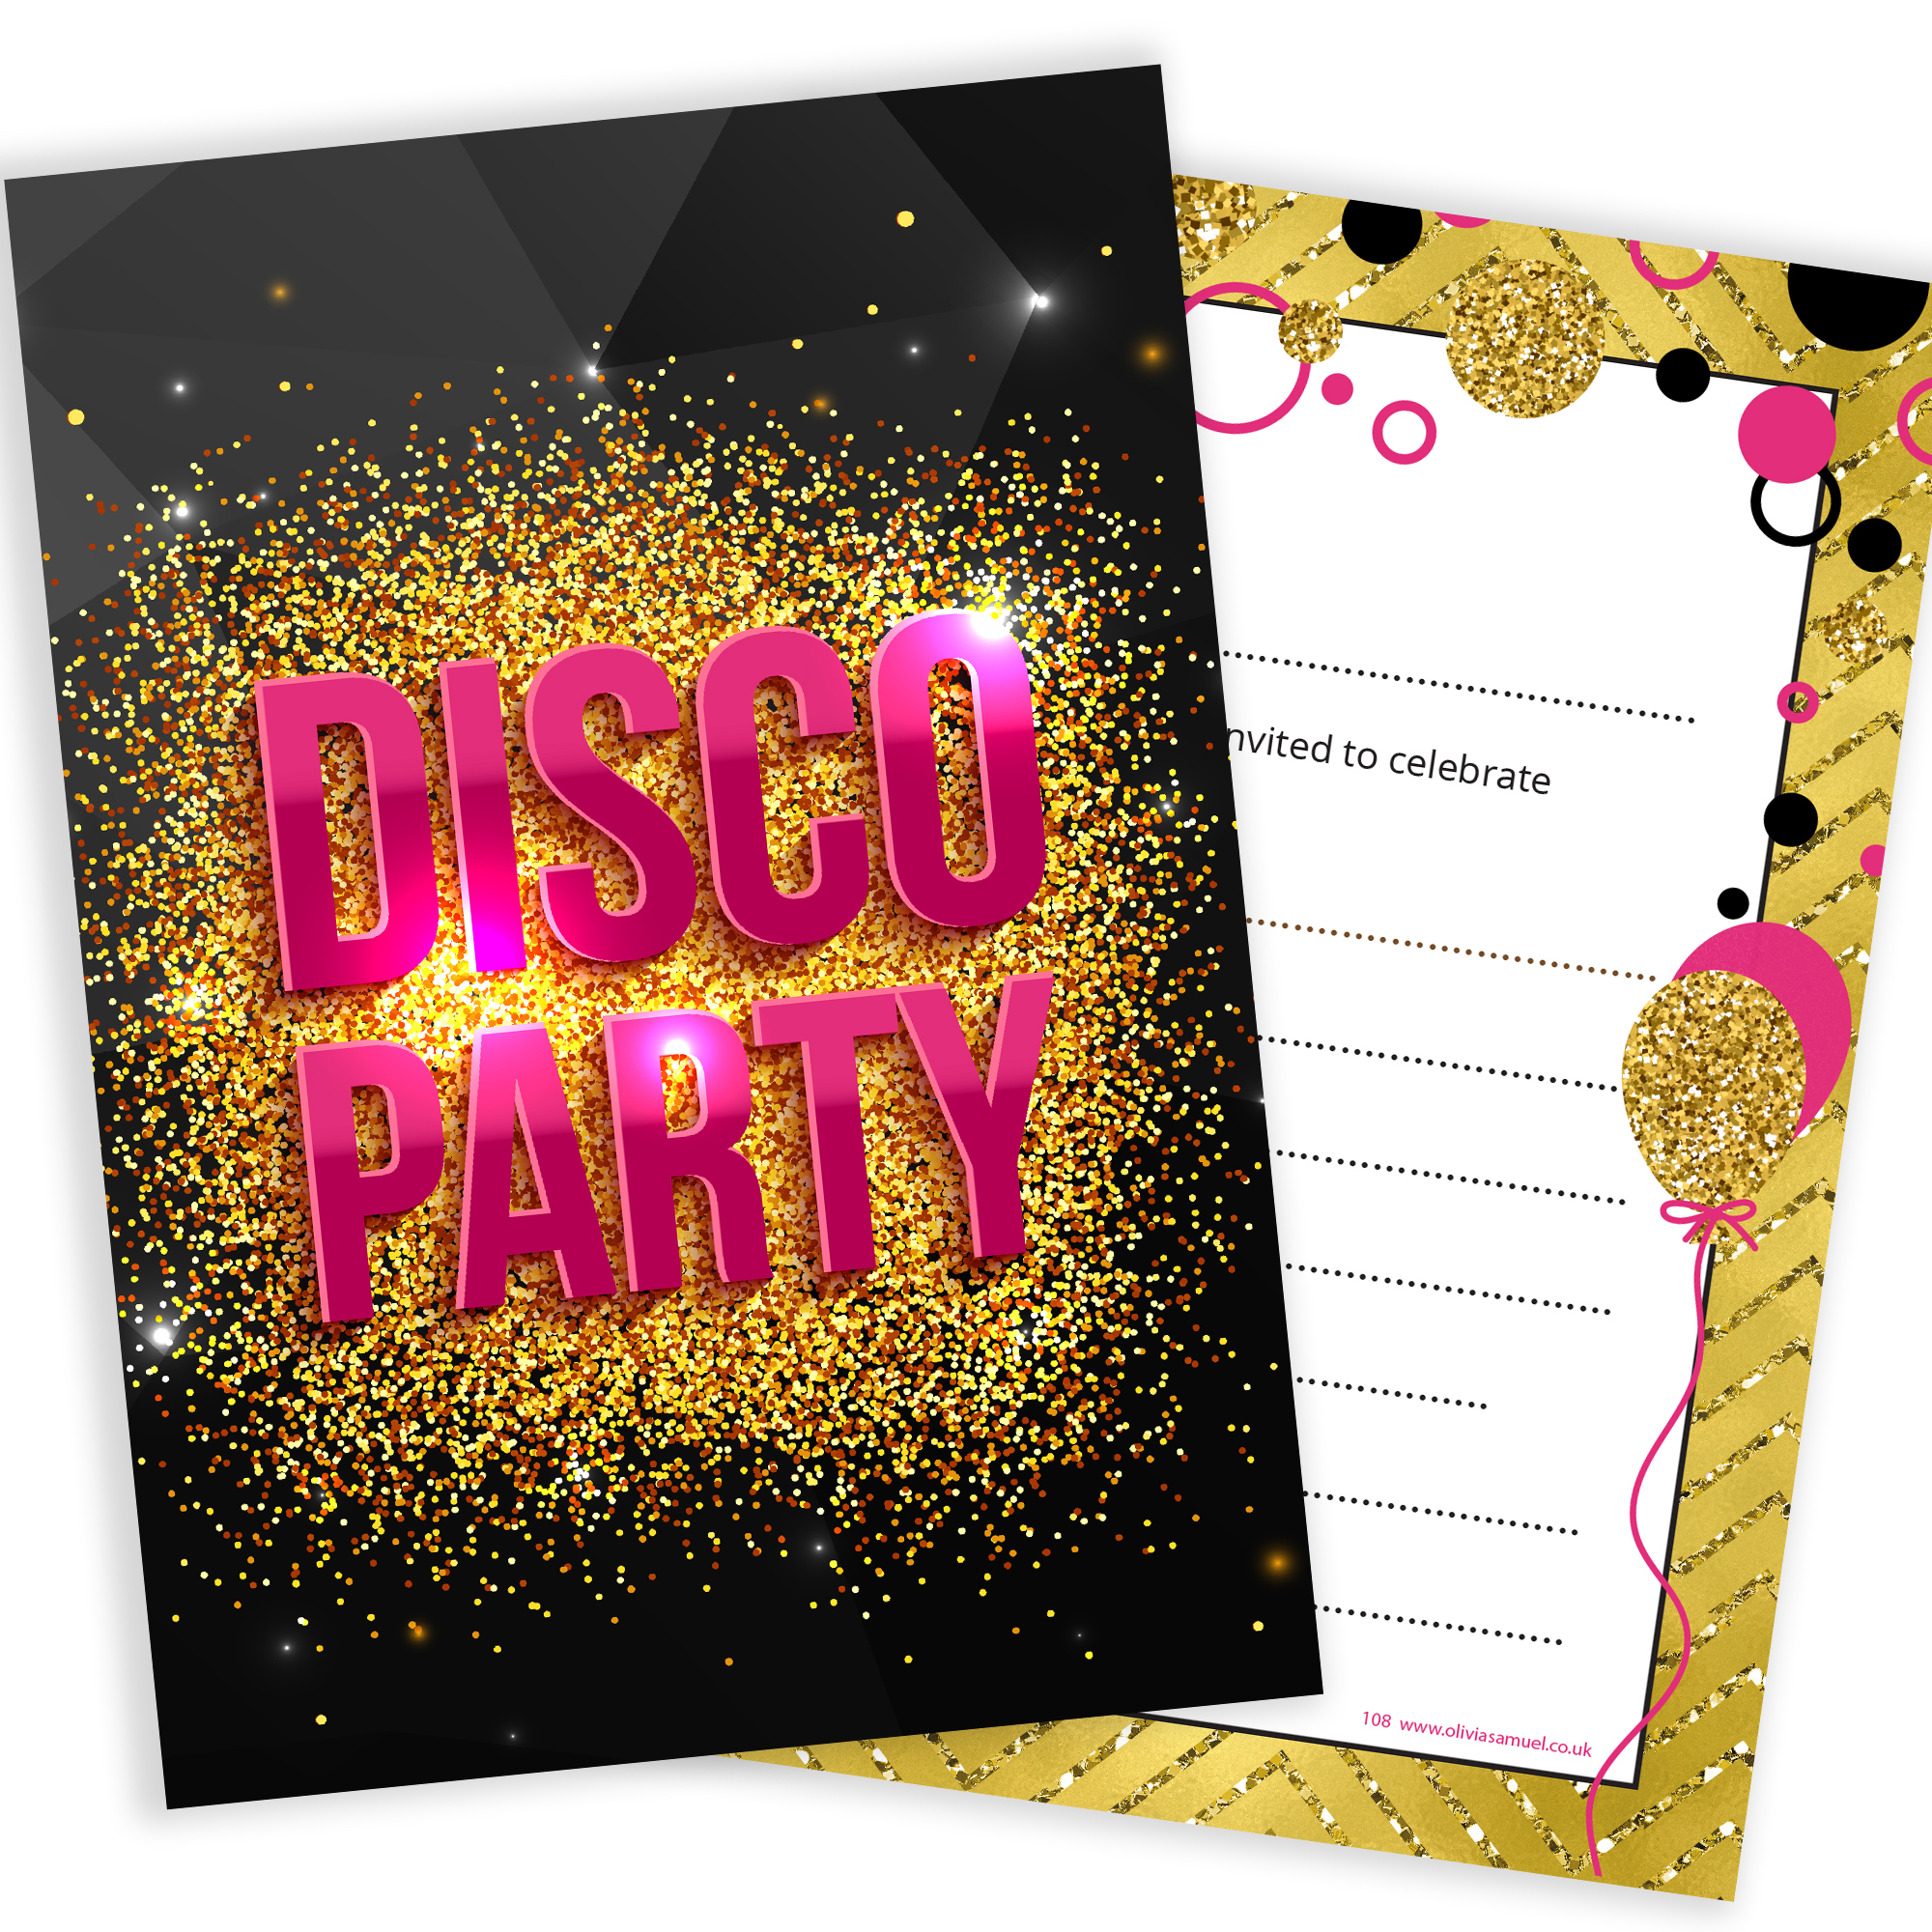 disco party invitations  u2013 girls pink and gold style  u2013 ready to write with envelopes  pack 10